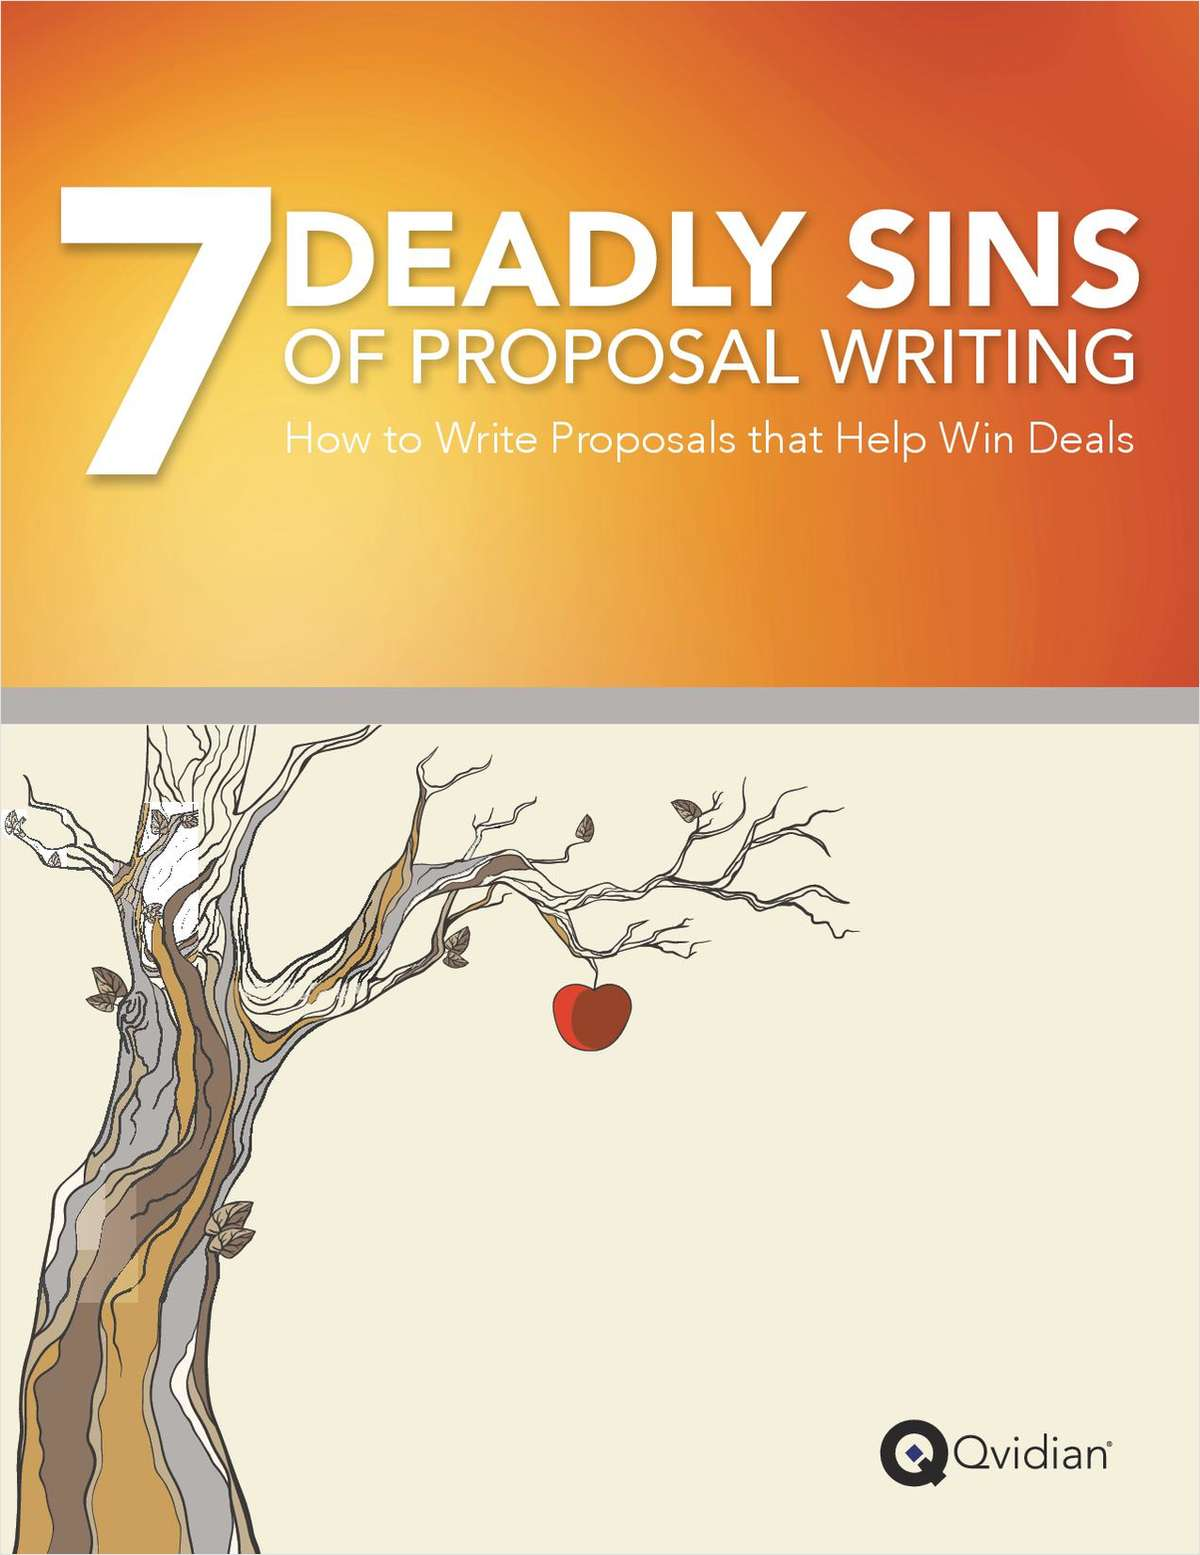 7 Deadly Sins of Proposal Writing